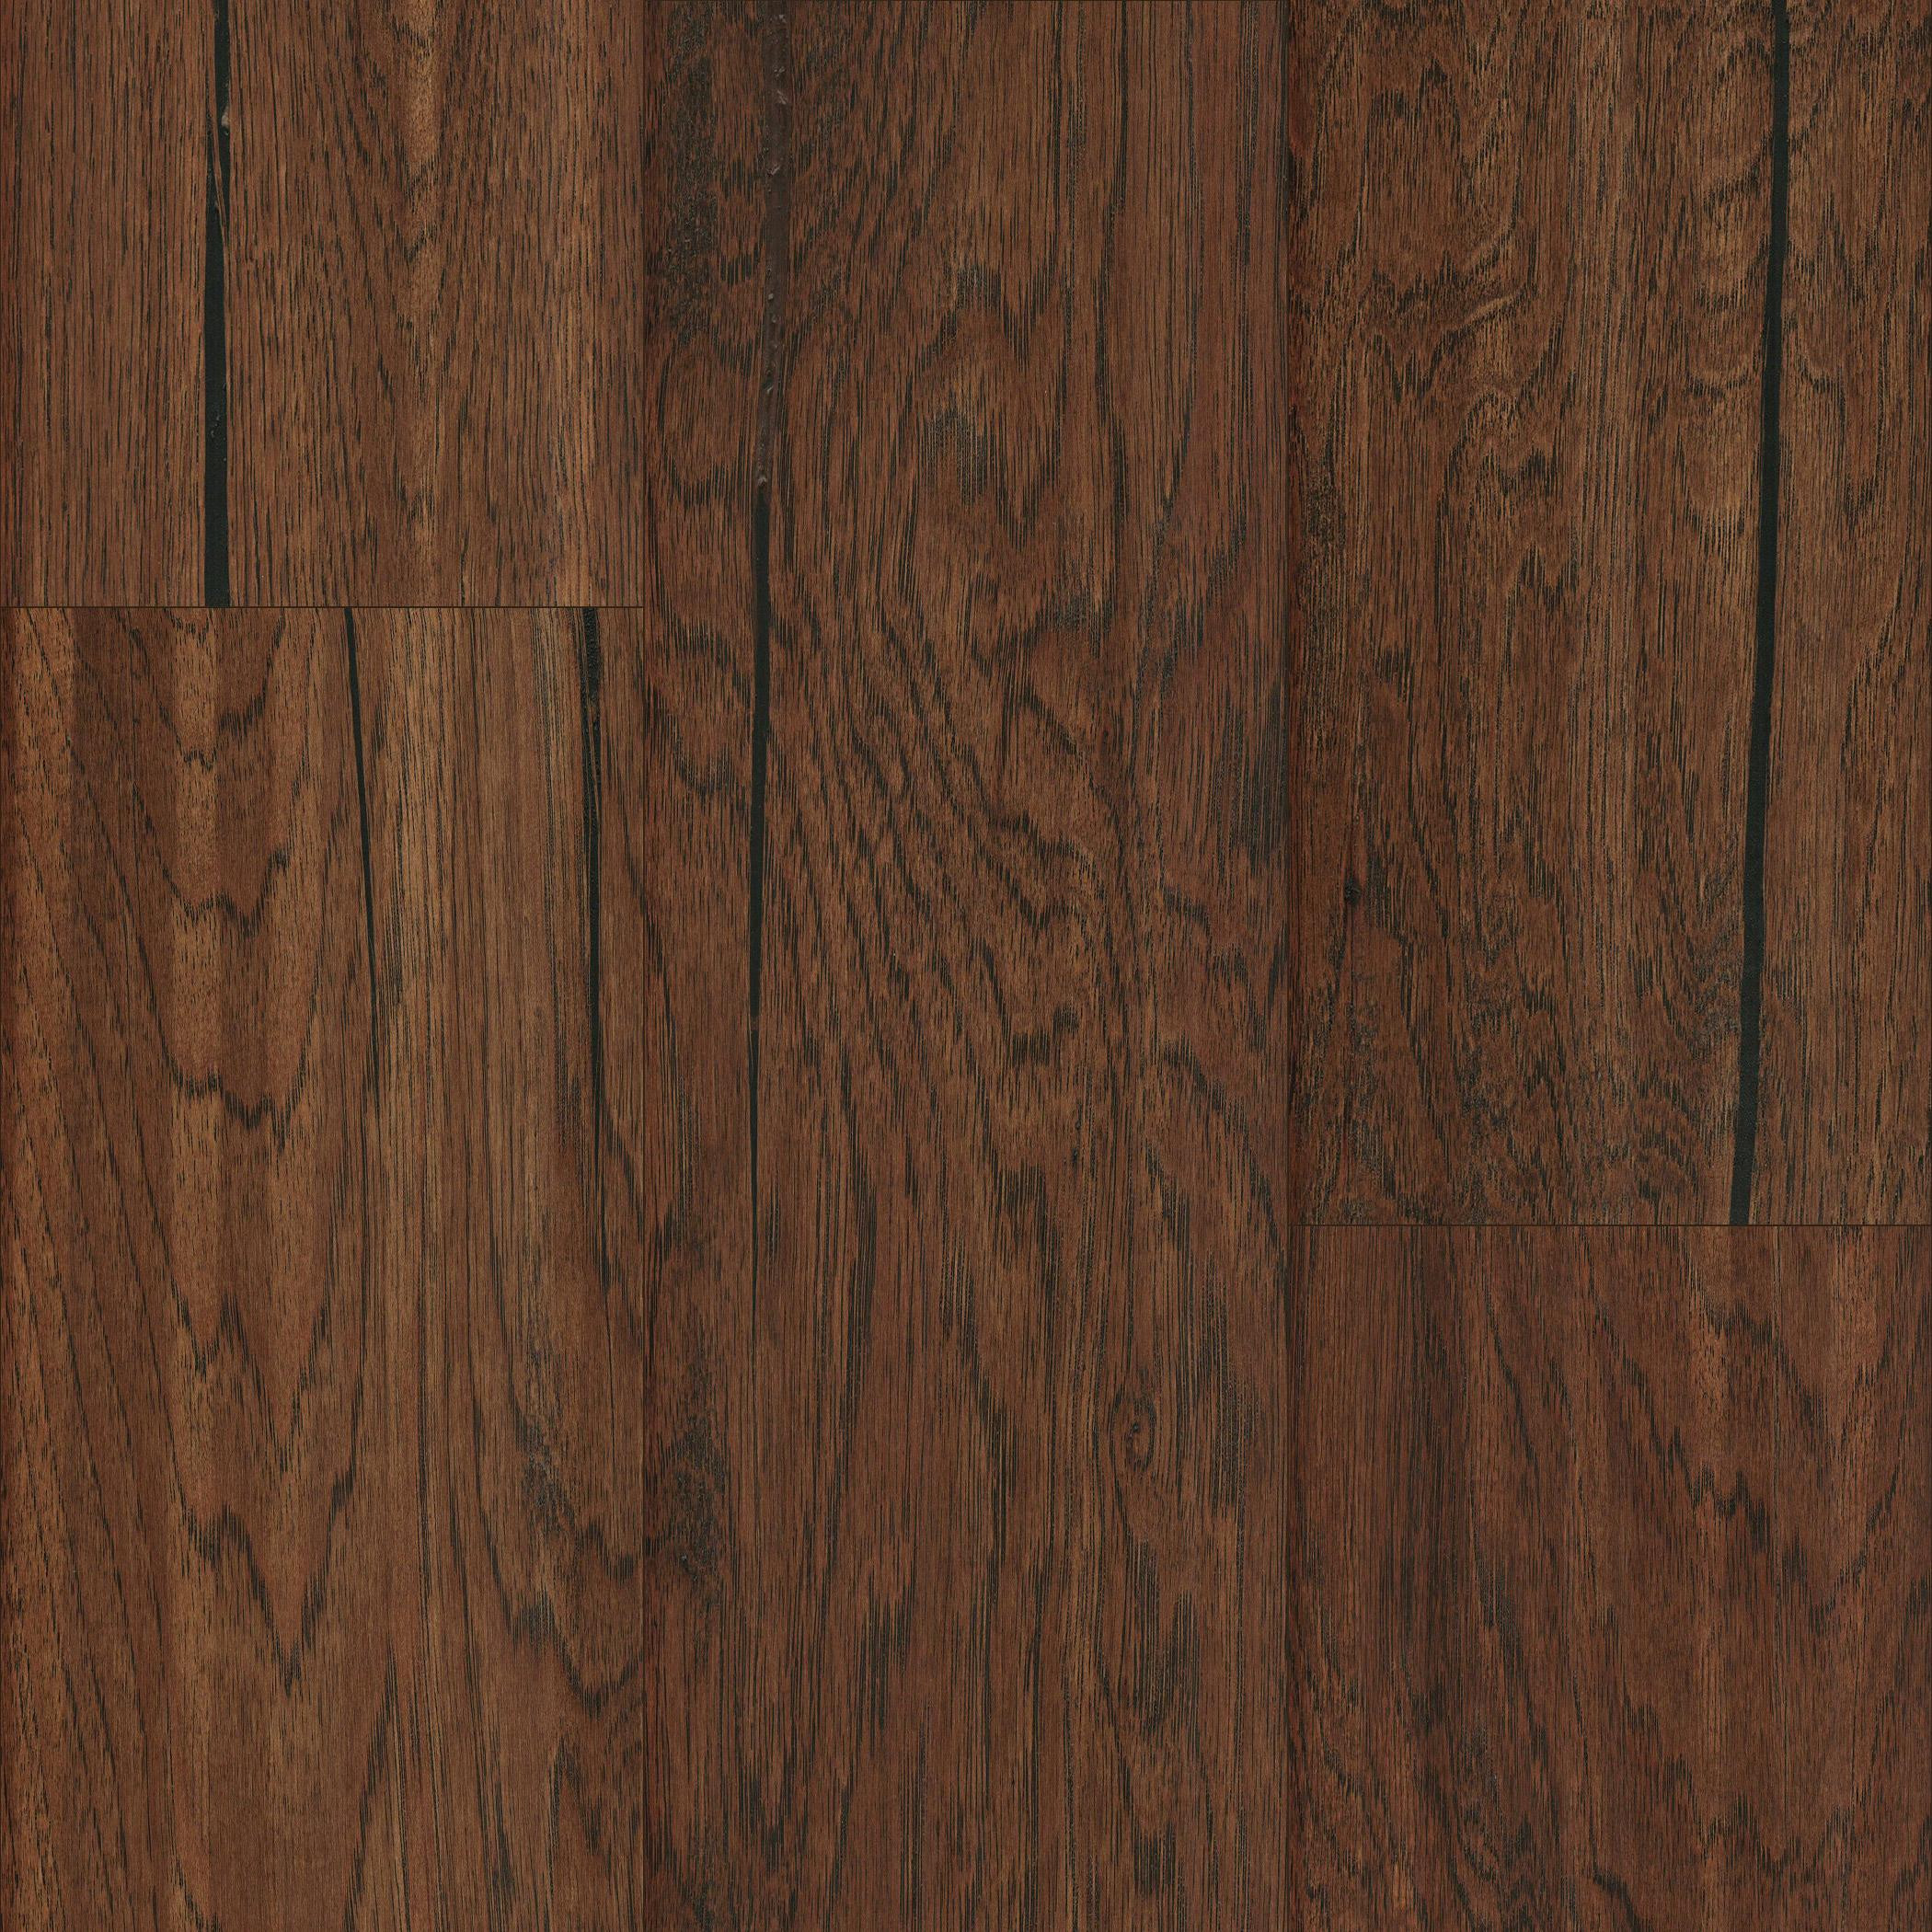 grey hand scraped hardwood floors of mullican san marco hickory provincial 7 sculpted engineered in mullican san marco hickory provincial 7 sculpted engineered hardwood flooring